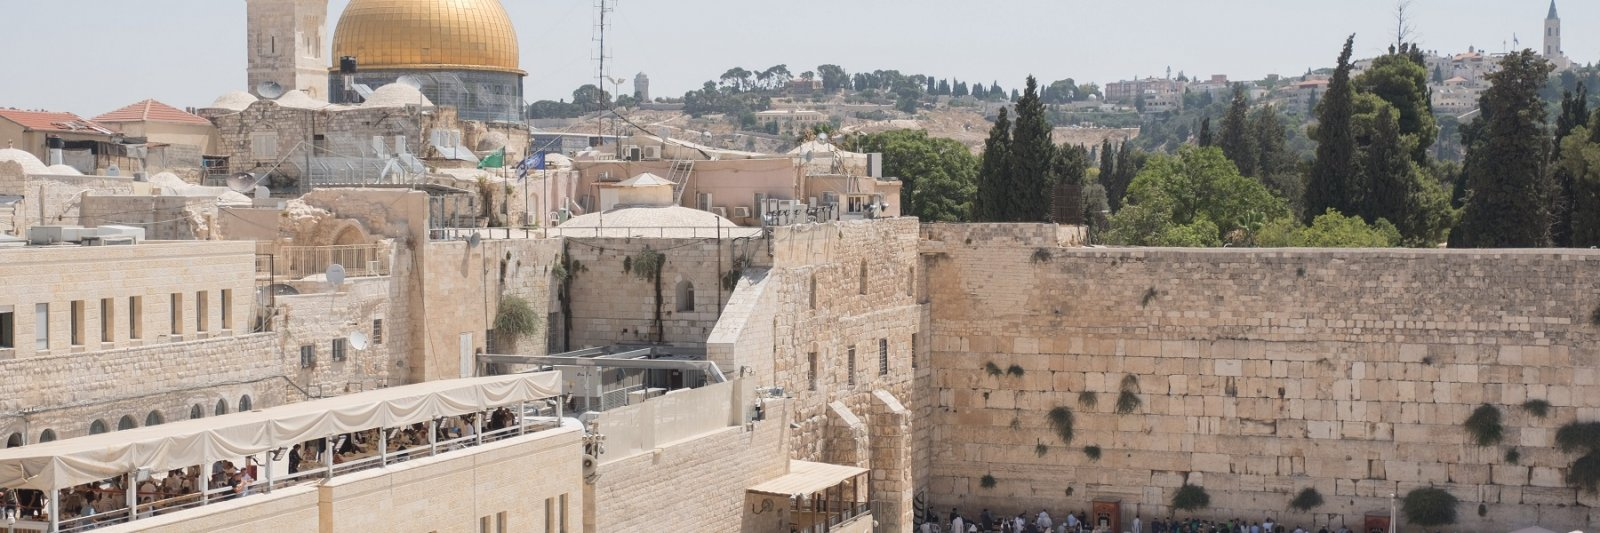 old city walls and sites